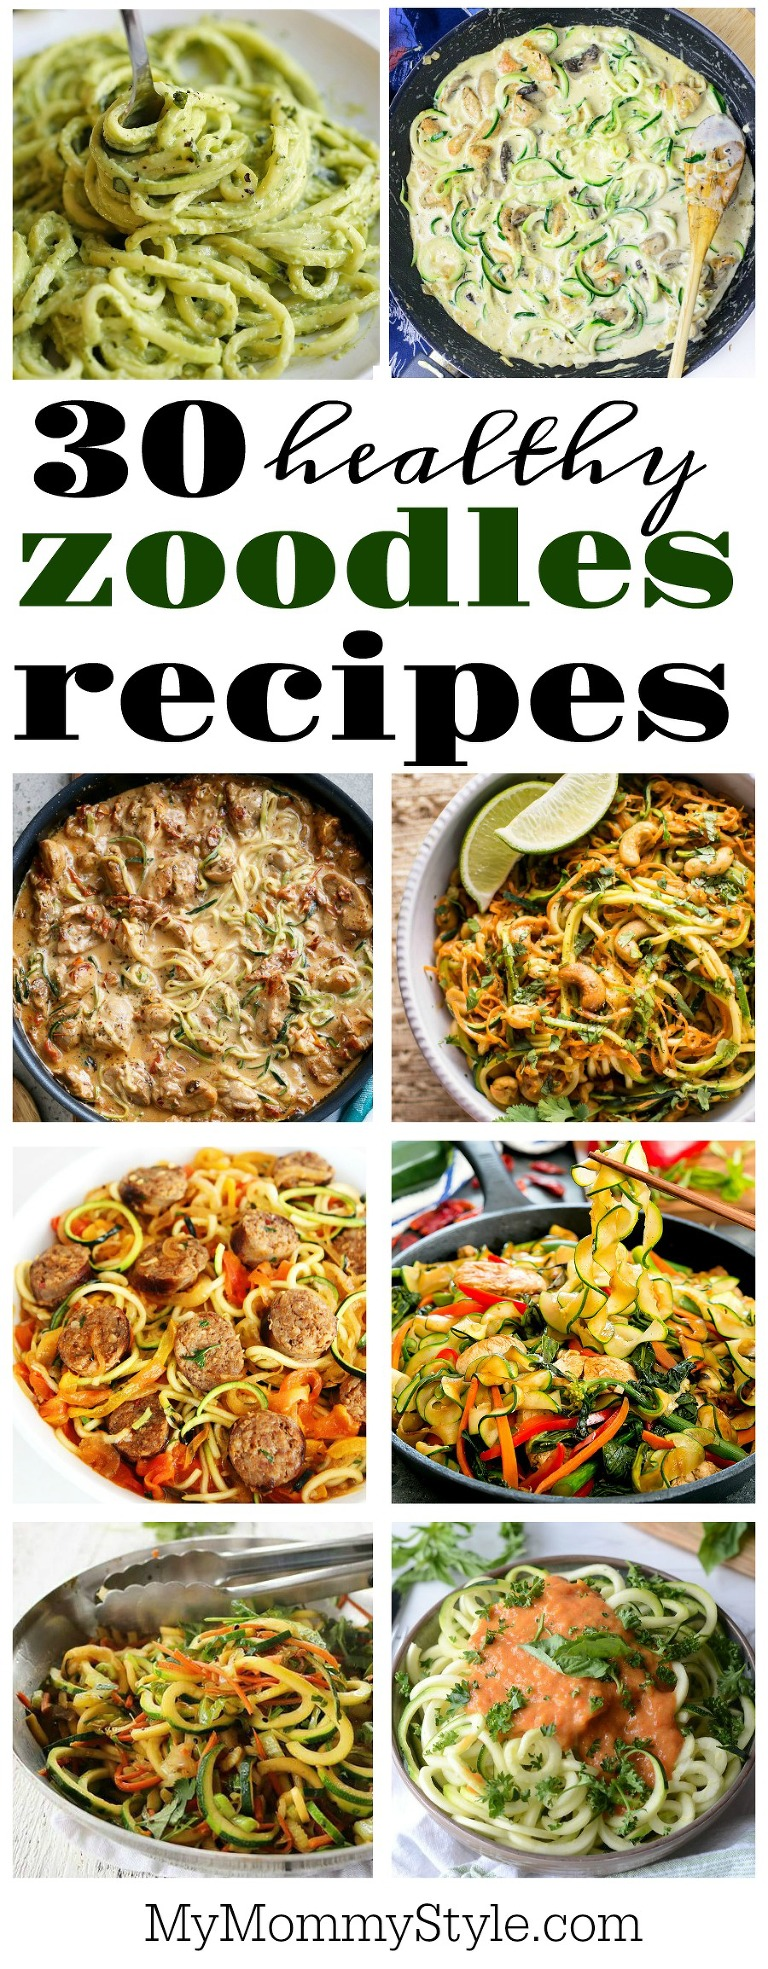 30 Healthy zoodles recipes collage